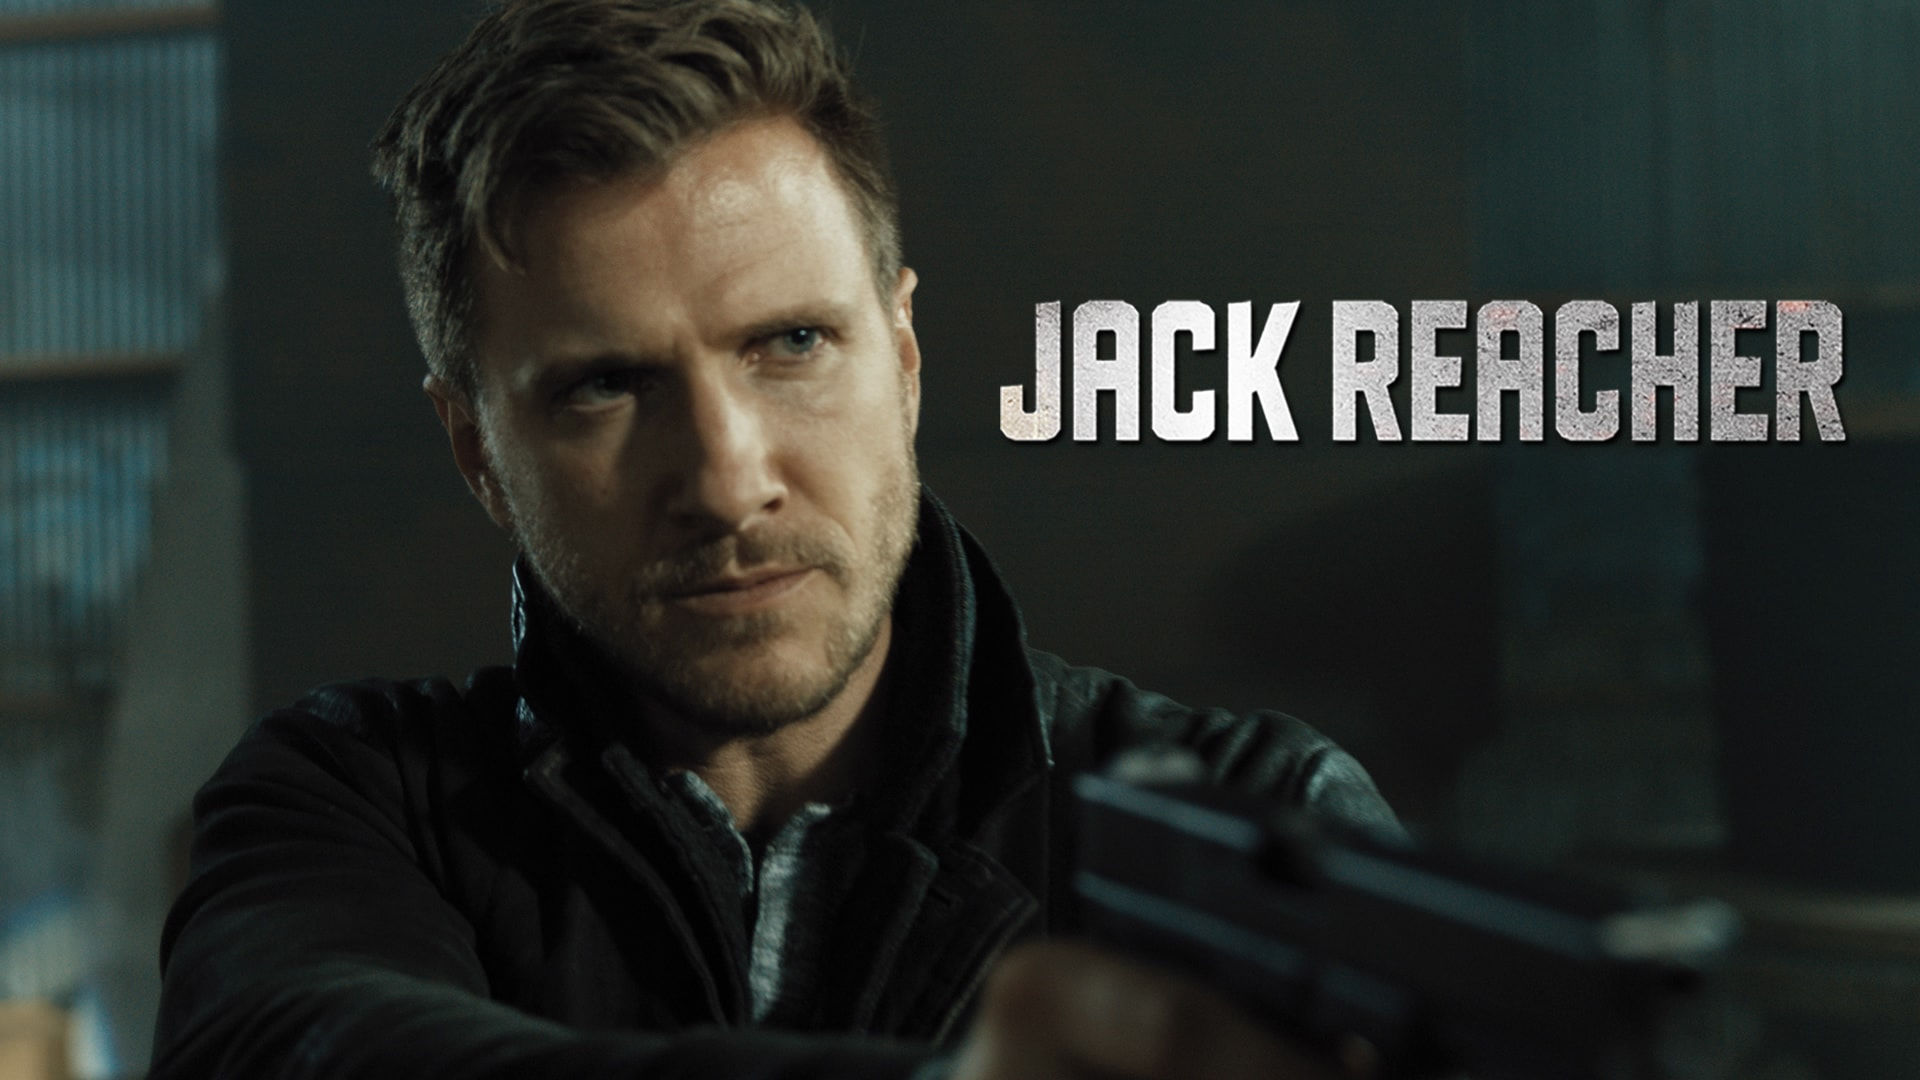 Jack Reacher: Never Go Back HQ wallpapers